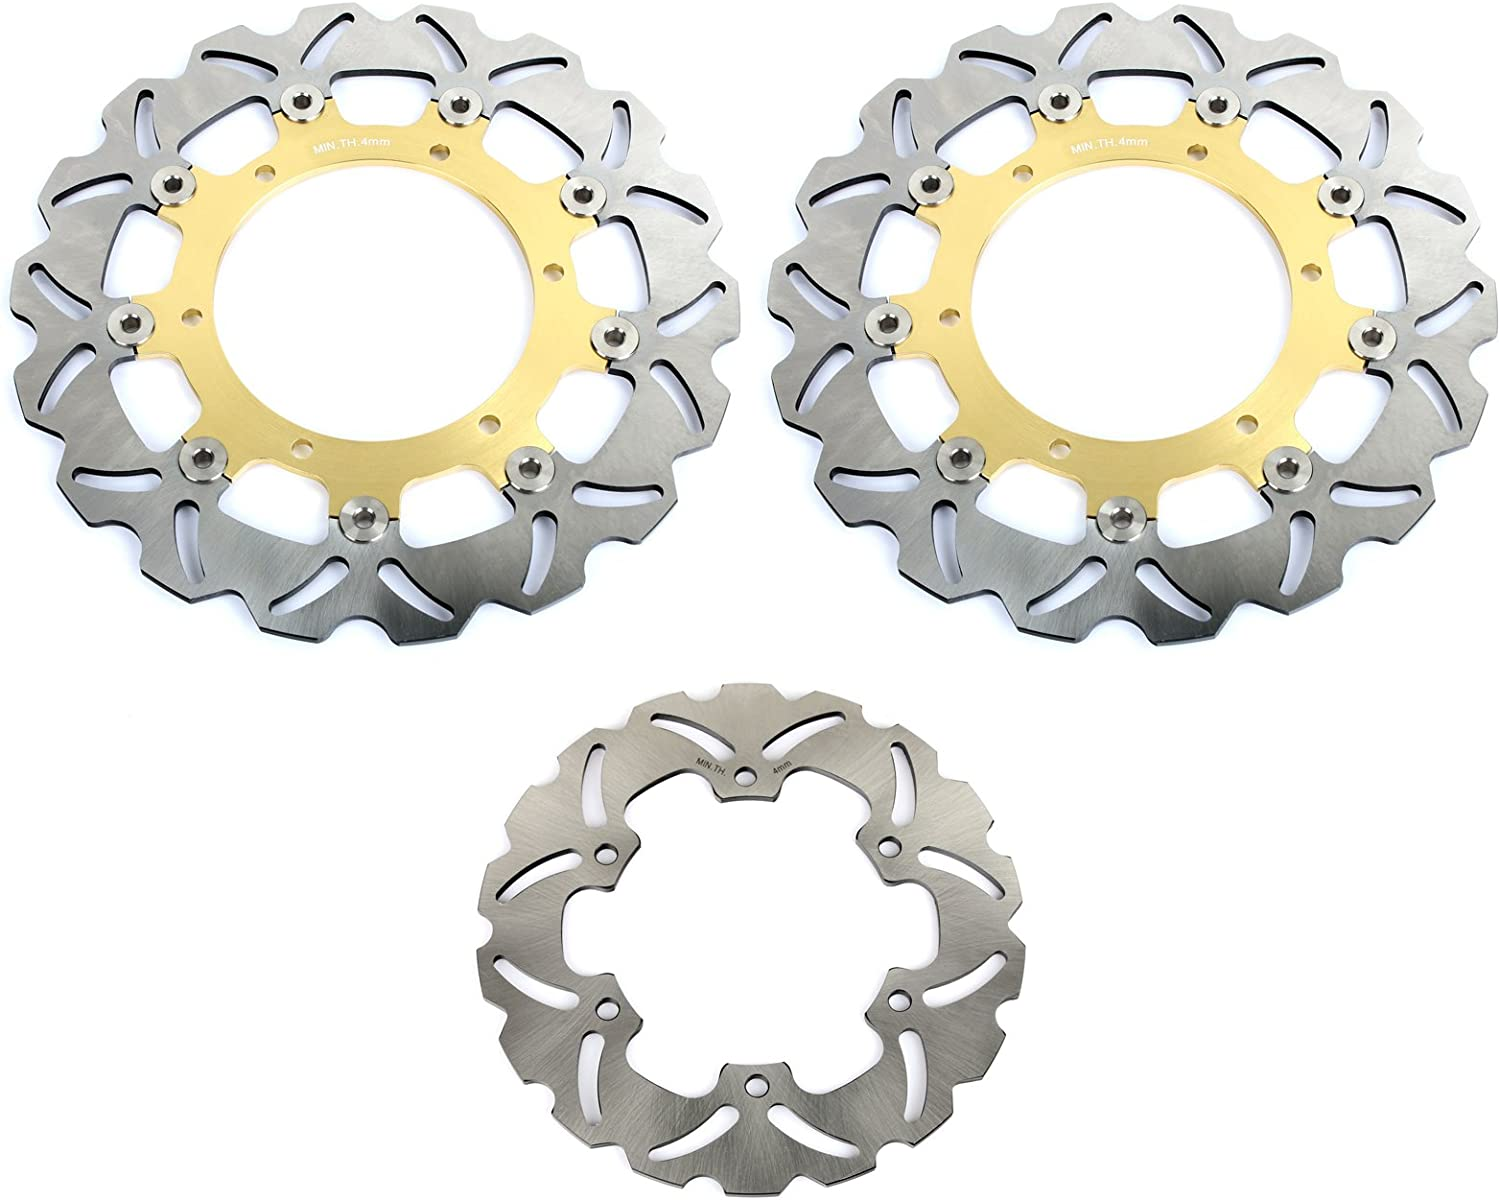 TARAZON Front Rear Brake Rotors Discs for Yamaha YZF R1 2002-2003 YZF R6 1999-2002